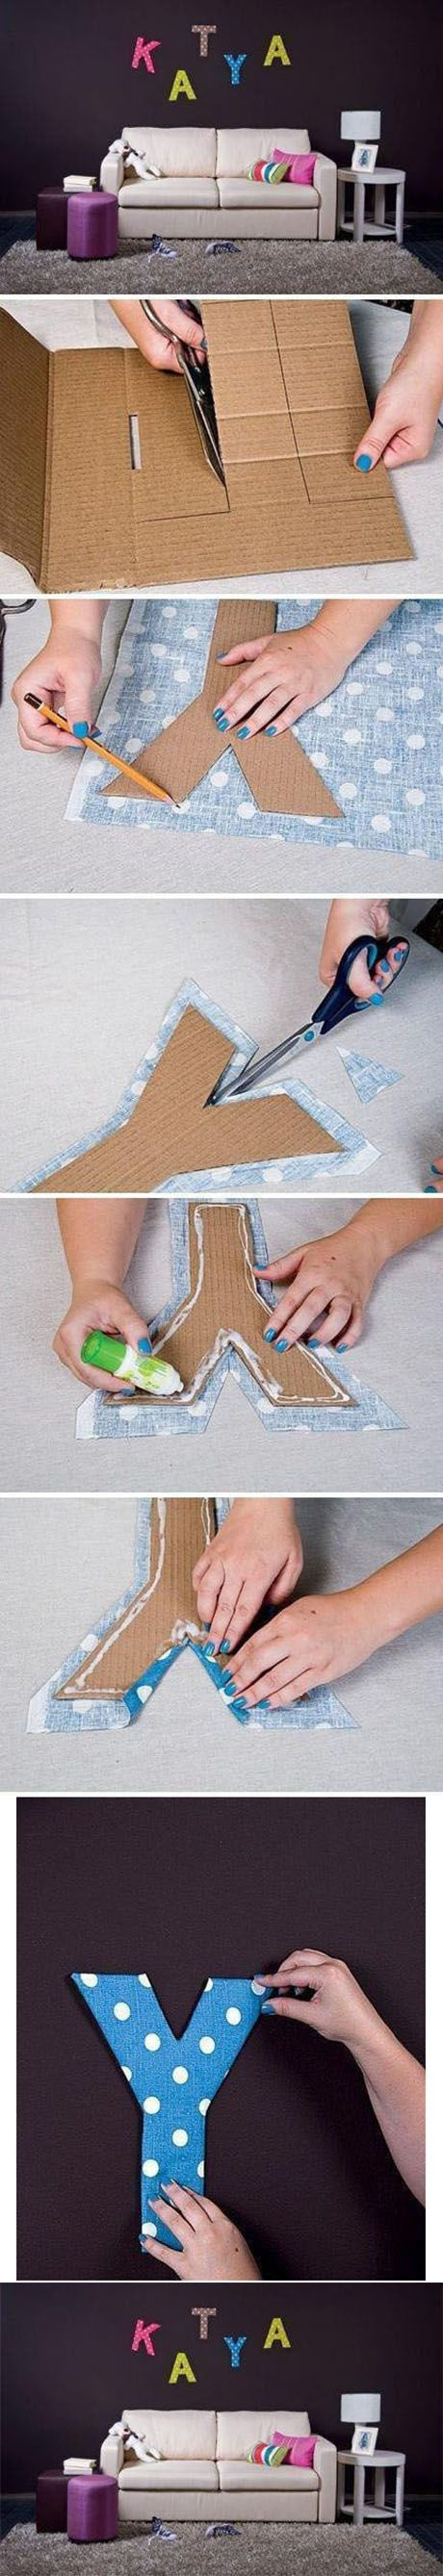 Great Letters Craft | DIY Crafts Tutorials